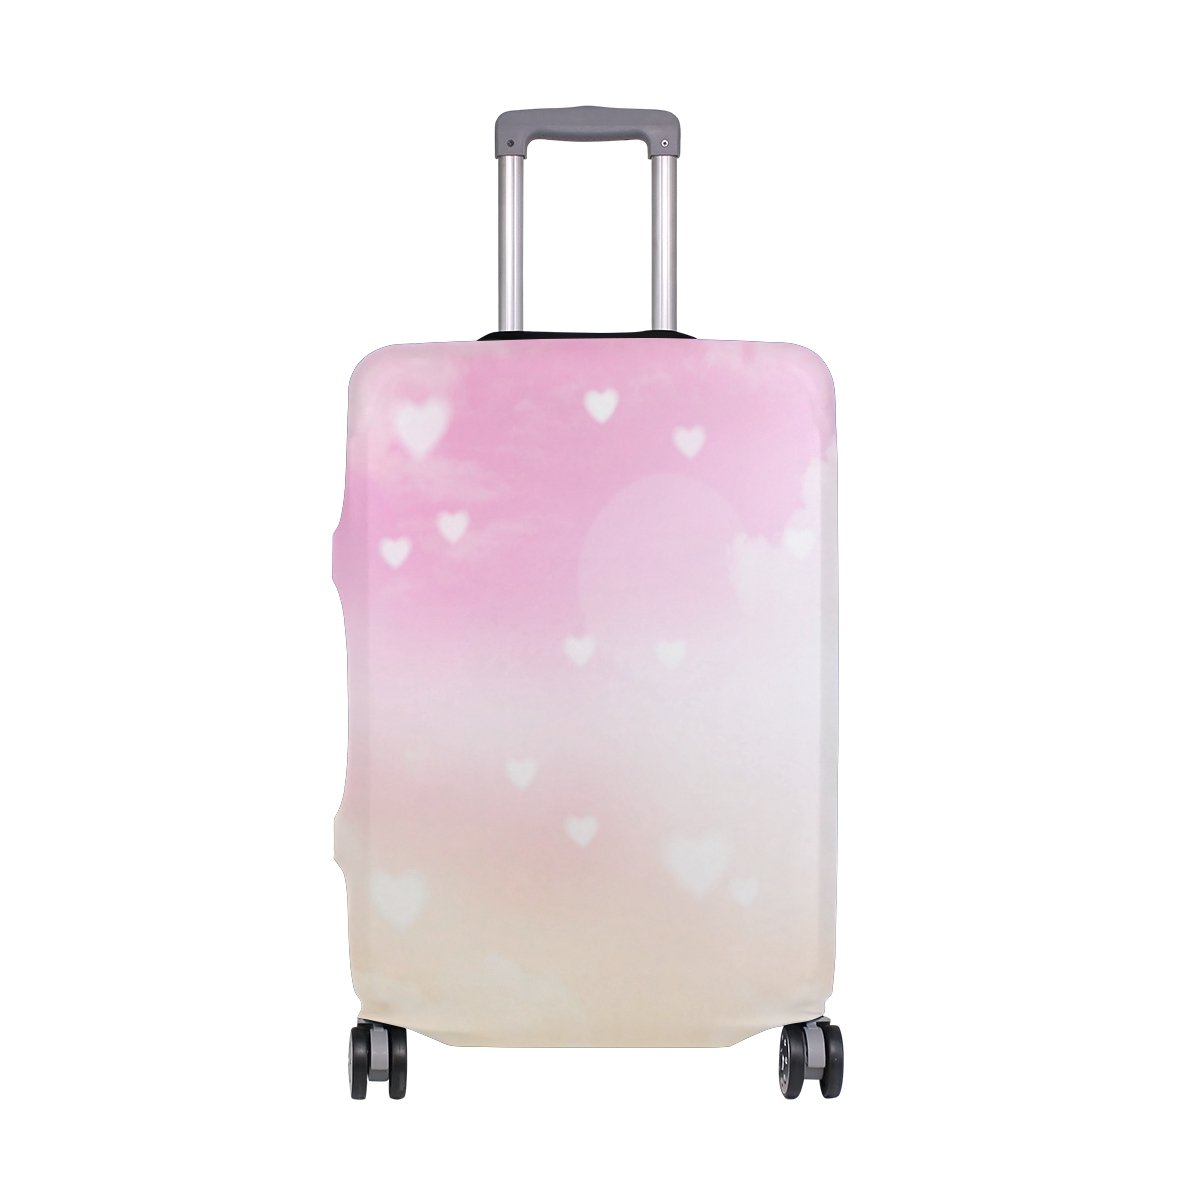 My Daily Hearts Clouds Valentine's Day Wedding Luggage Cover Fits 18-22 Inch Suitcase Spandex Travel Protector S